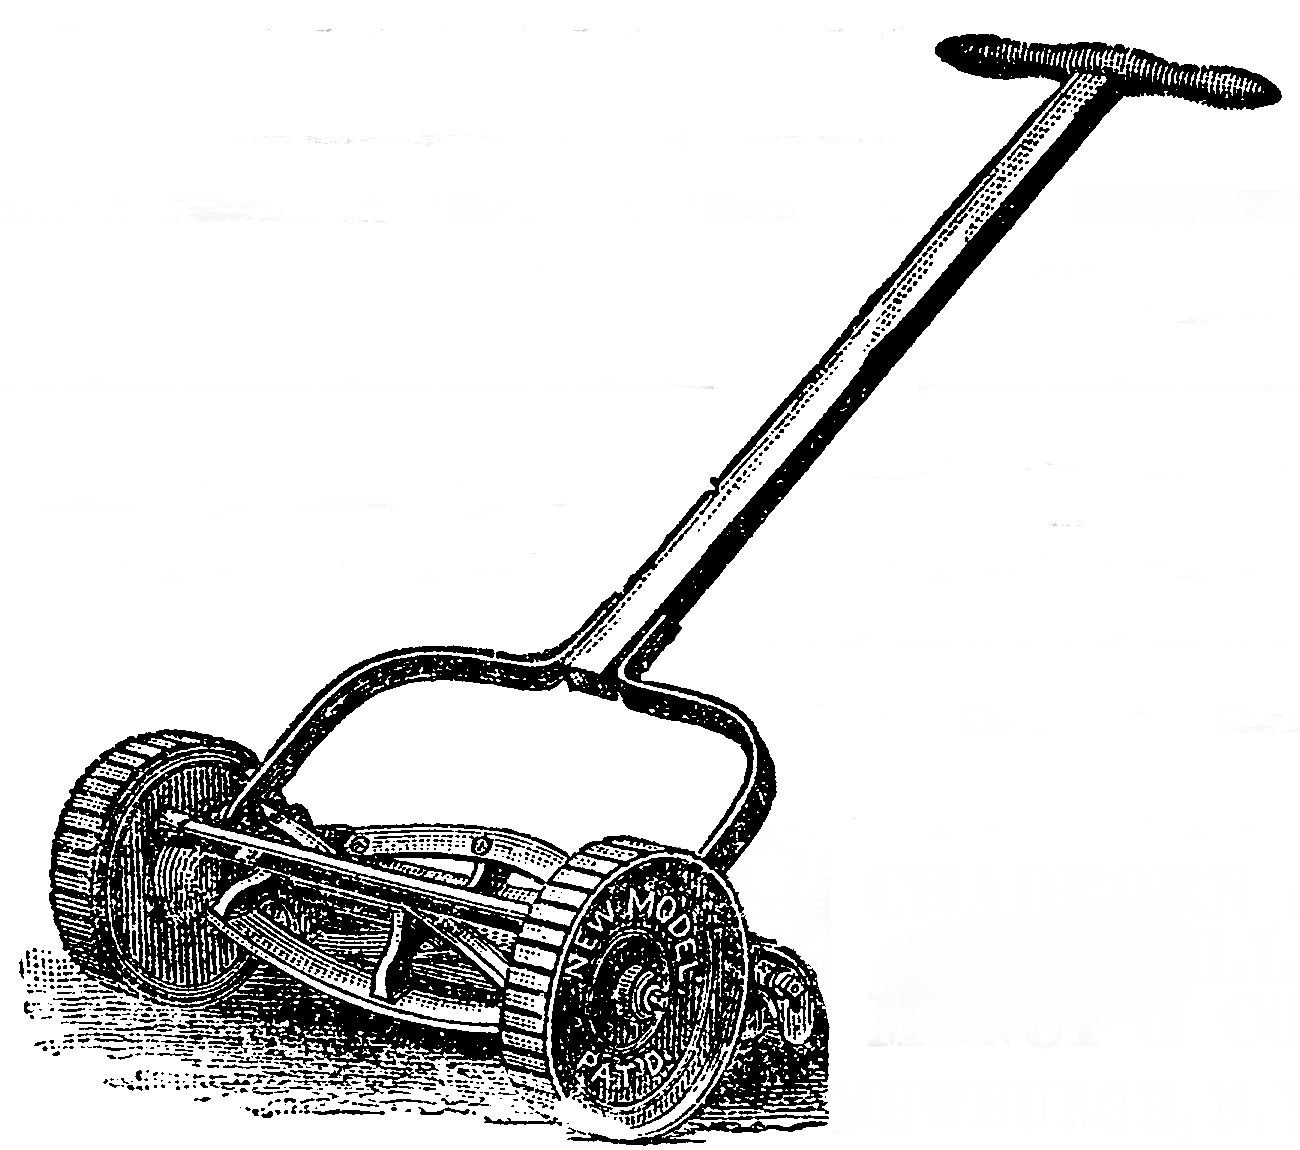 A black-and-white image of a reel lawnmower